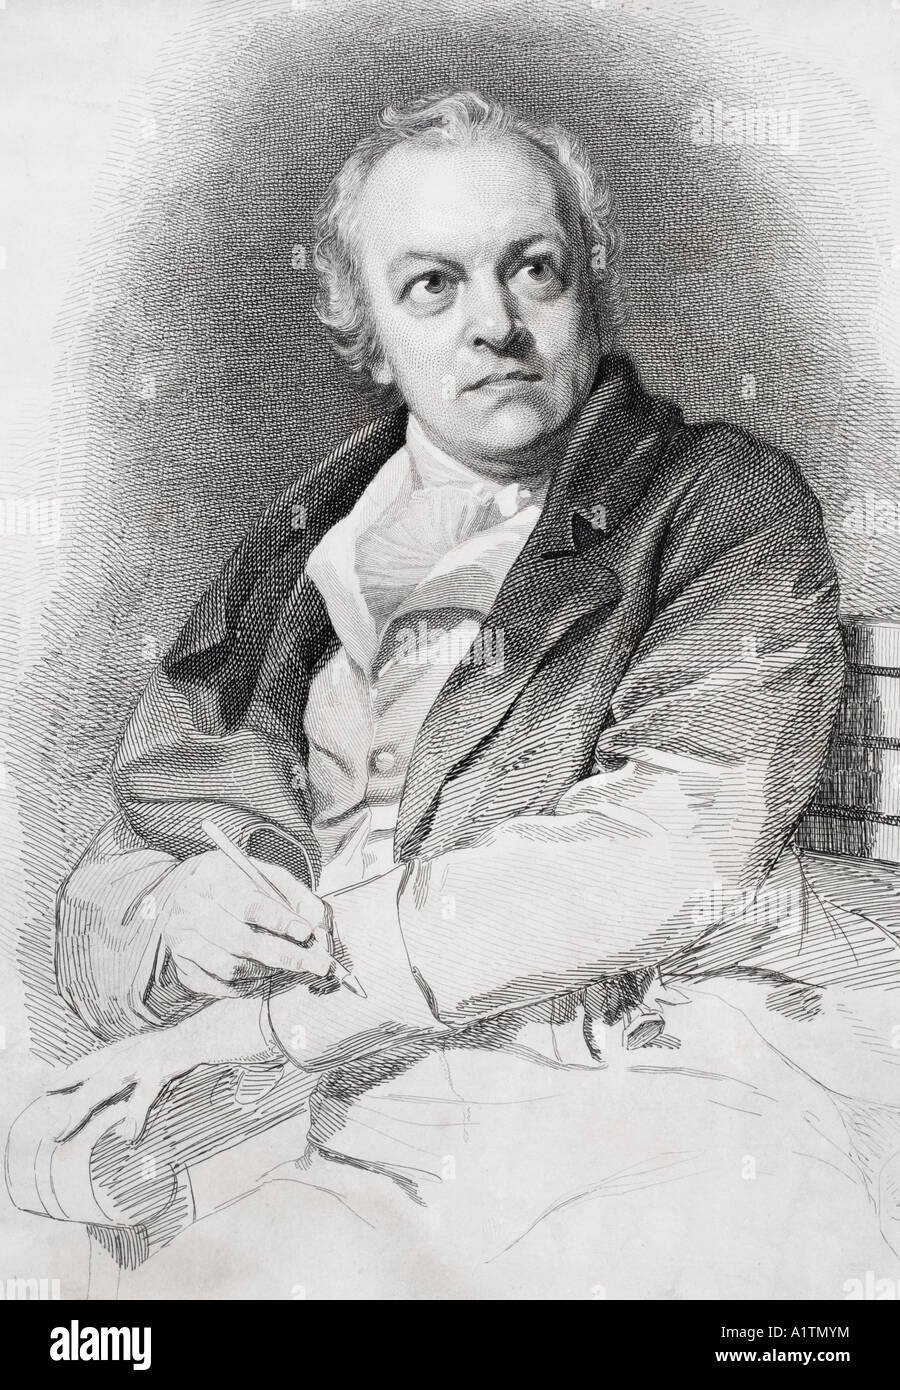 William Blake 1757 to 1857 English poet painter and printmaker - Stock Image